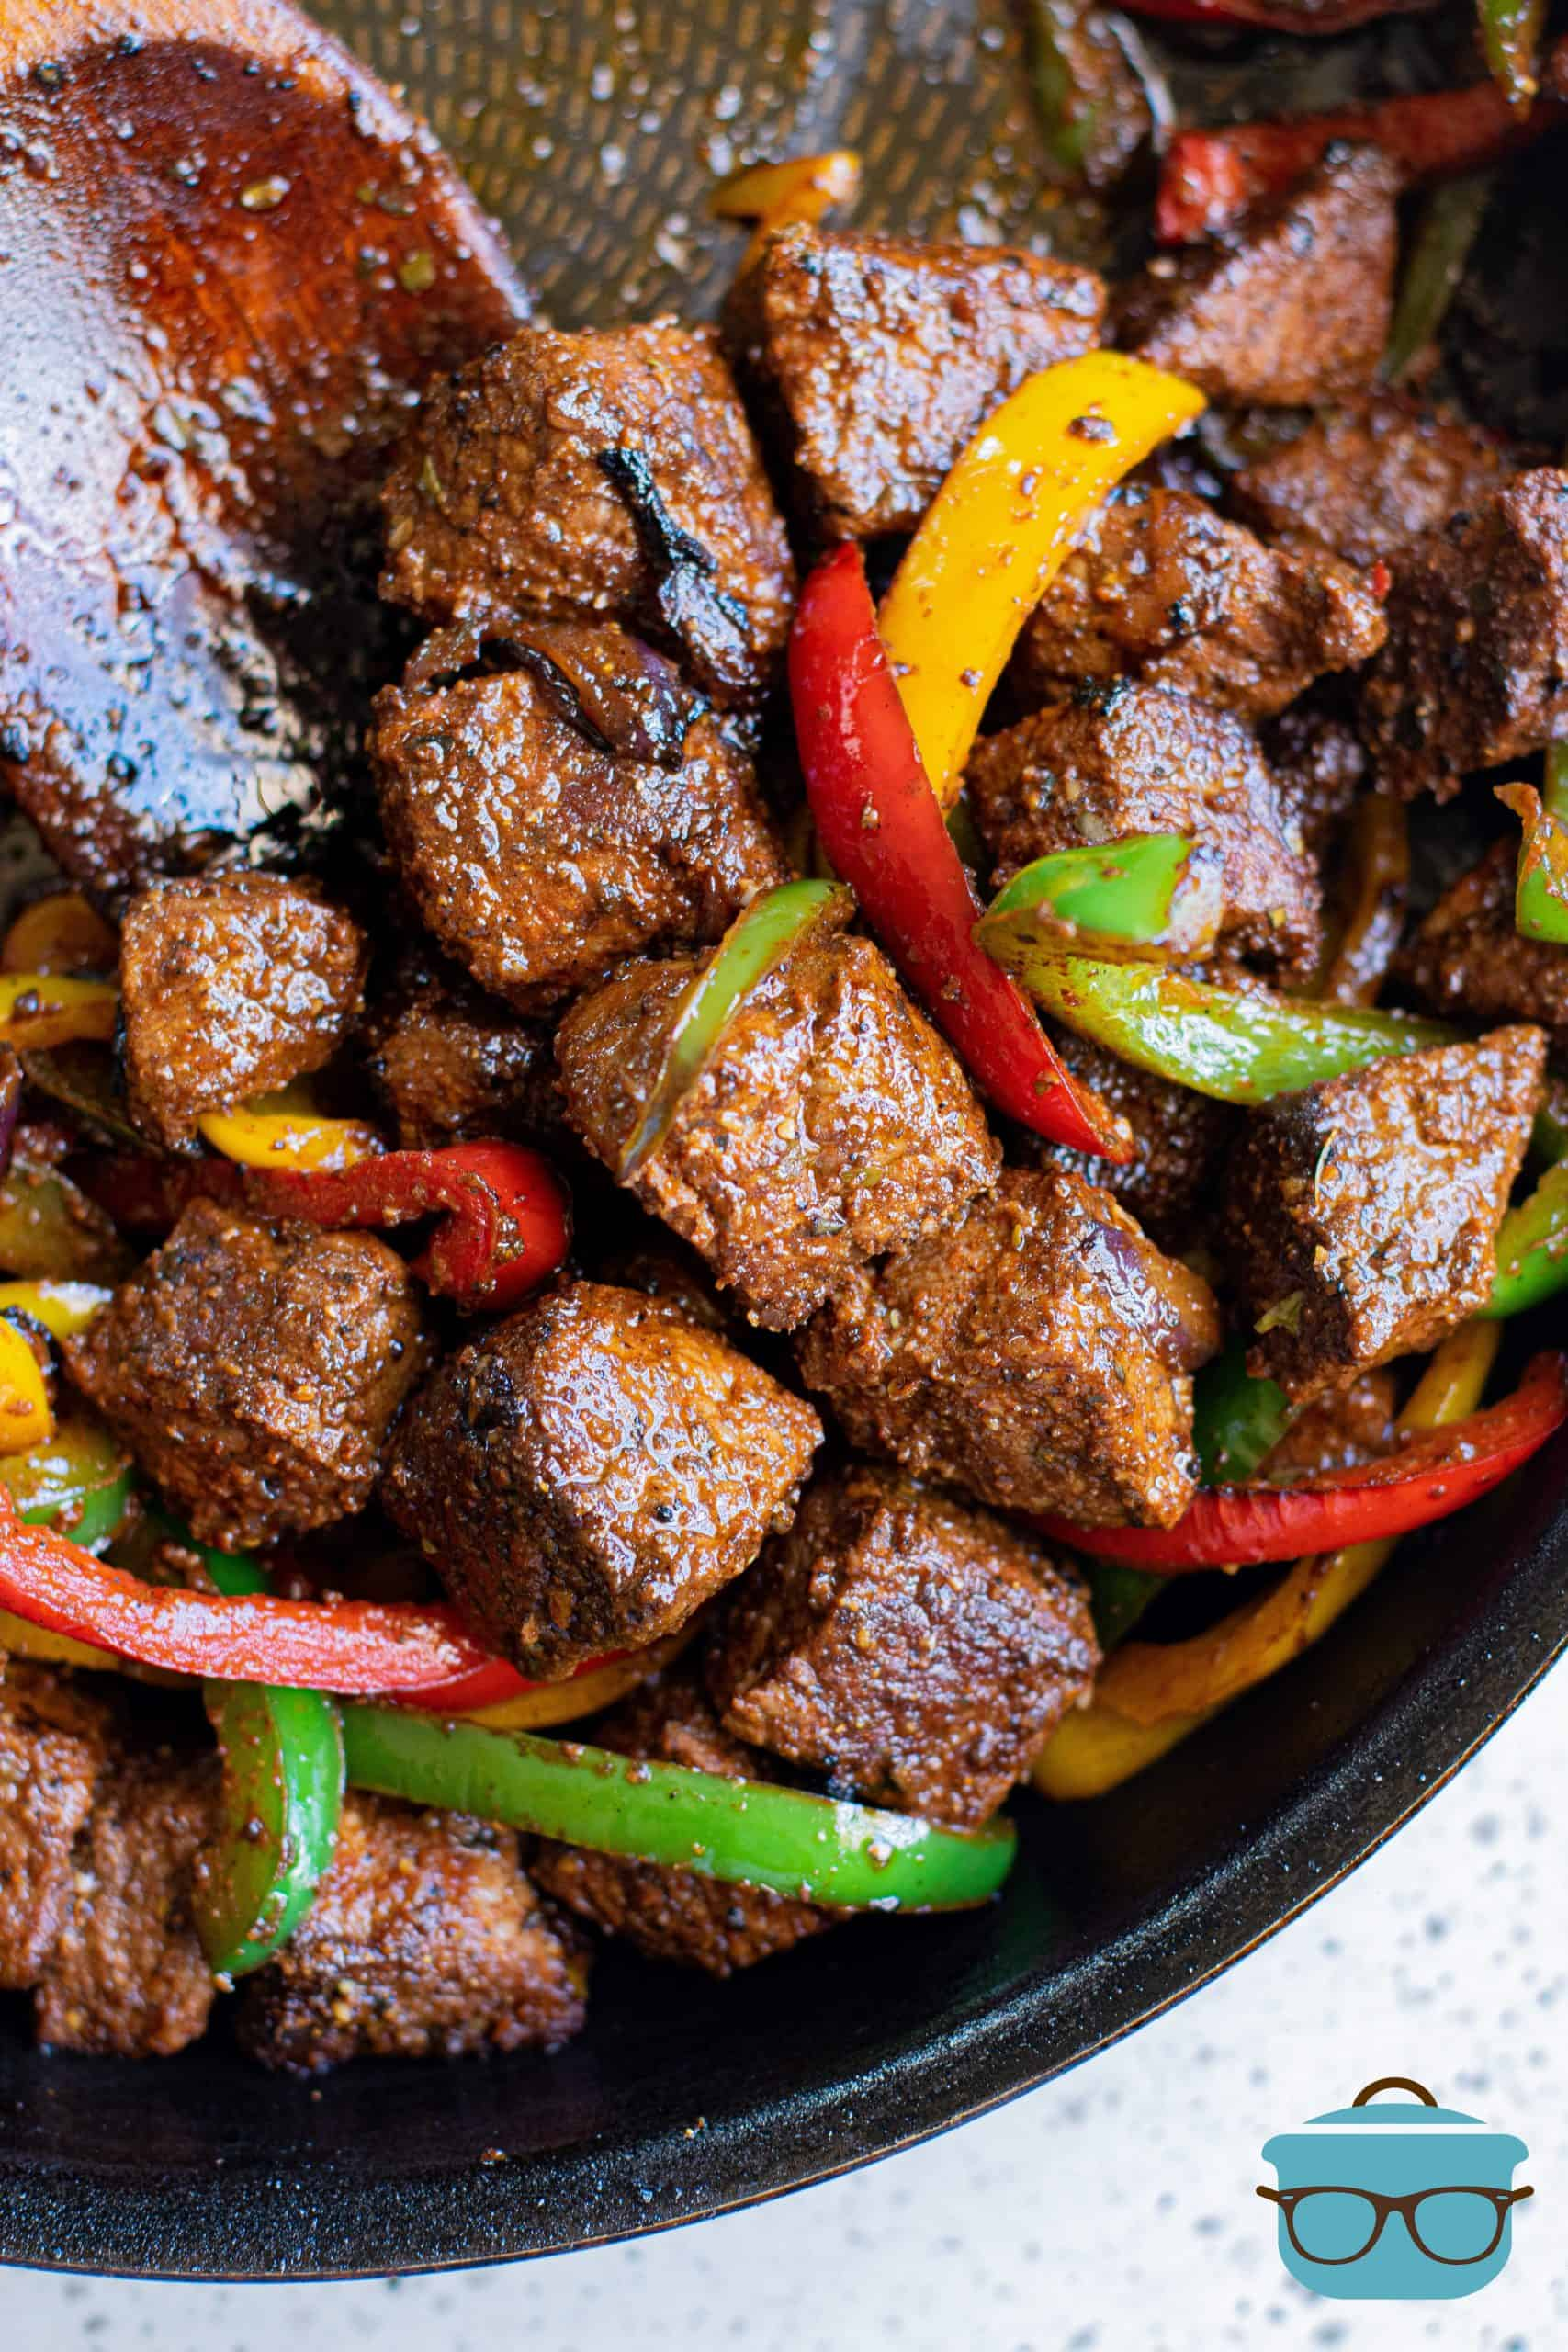 Finished Steak, onions and peppers in pan.